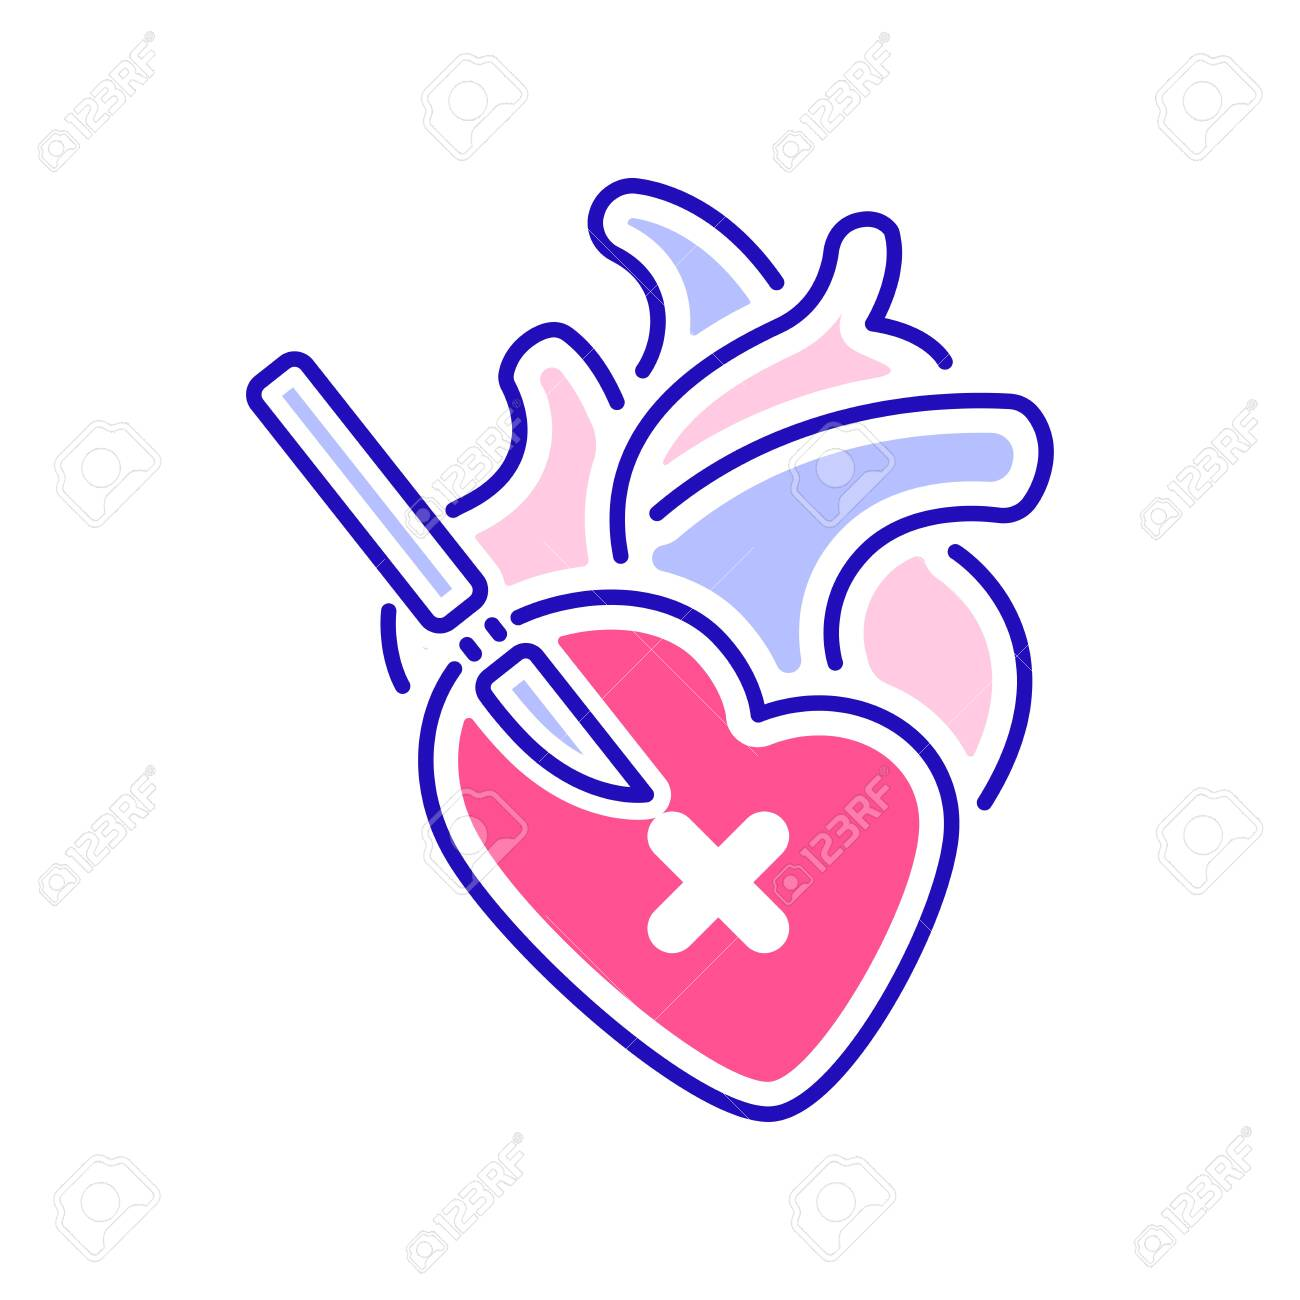 Heart Surgery Color Line Icon Surgical Emergency Isolated Vector Royalty Free Cliparts Vectors And Stock Illustration Image 150121312